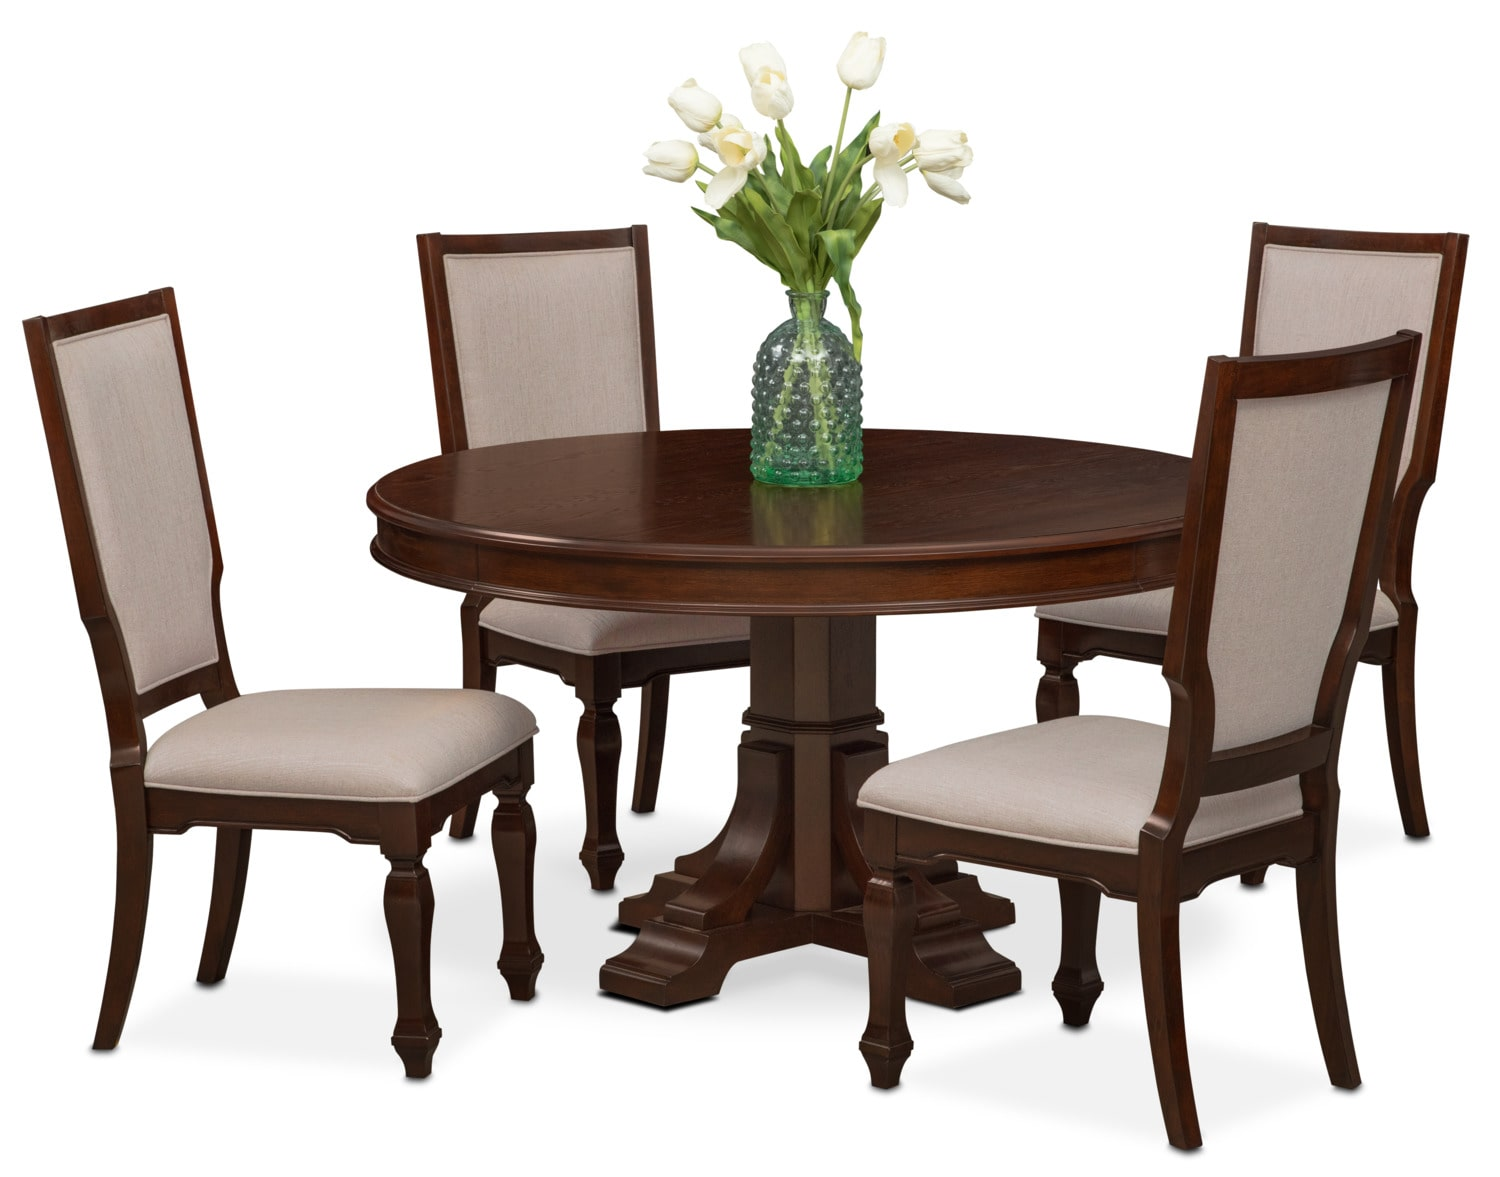 vienna round dining table and 4 upholstered side chairs merlot american signature furniture. Black Bedroom Furniture Sets. Home Design Ideas